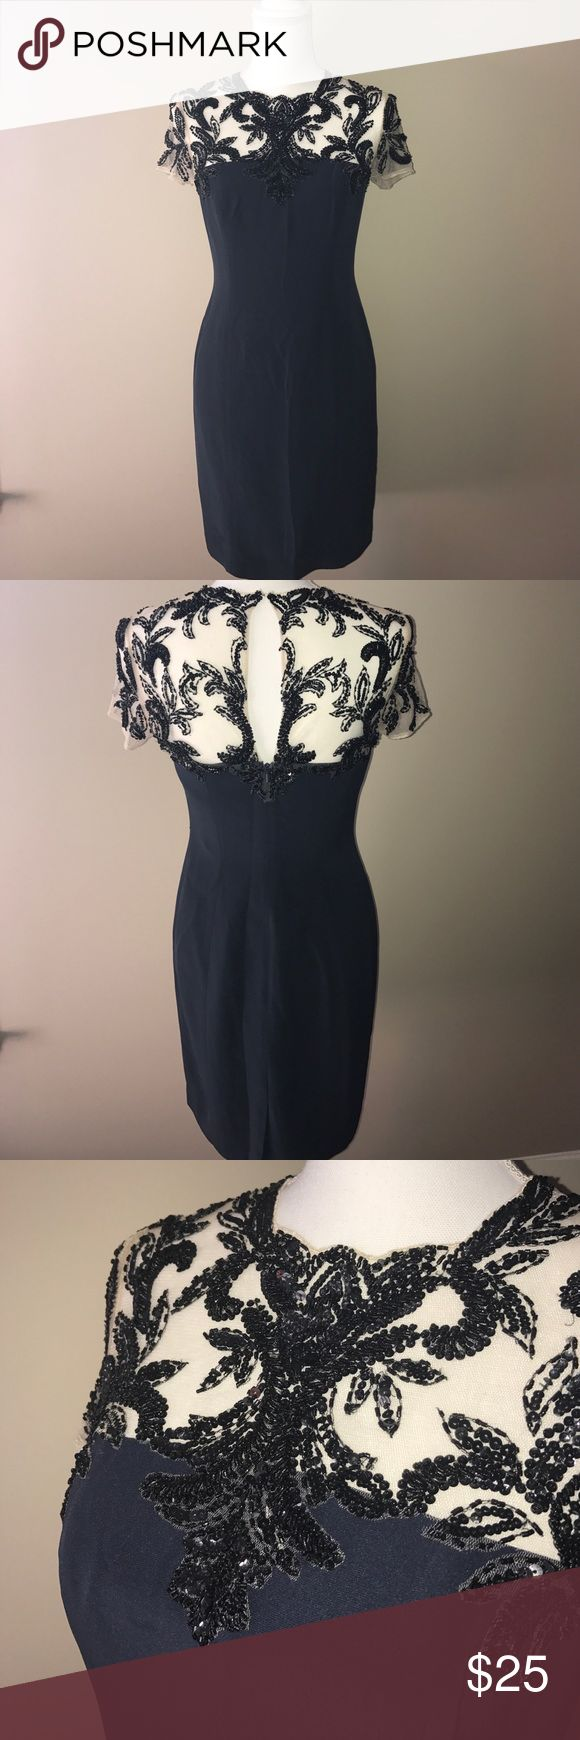 Sequin dress Navy fully lined bodice and skirt with black beading and sequins on sheer top Kathy Hilton Dresses Midi